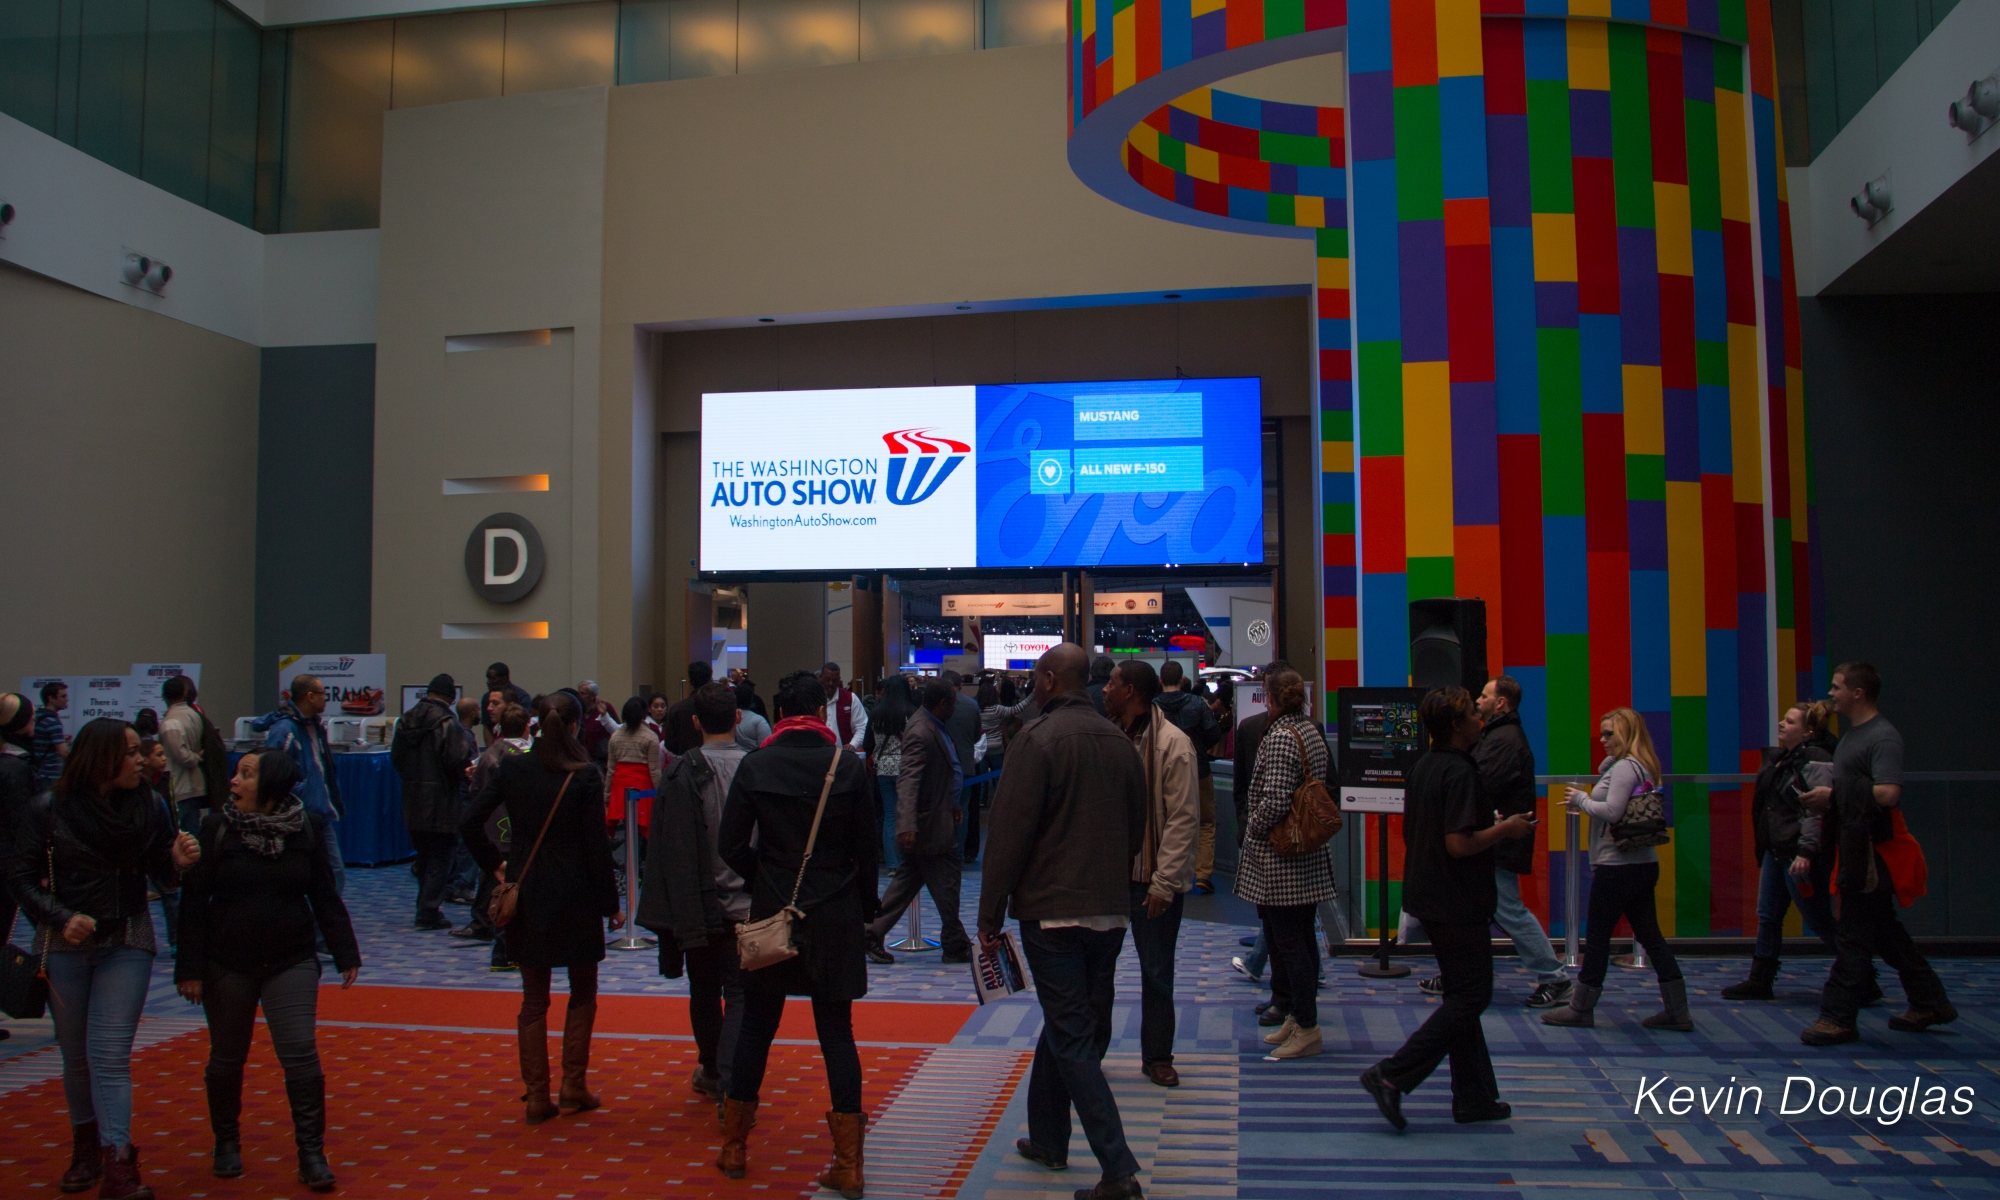 Washington Auto Show Entrance